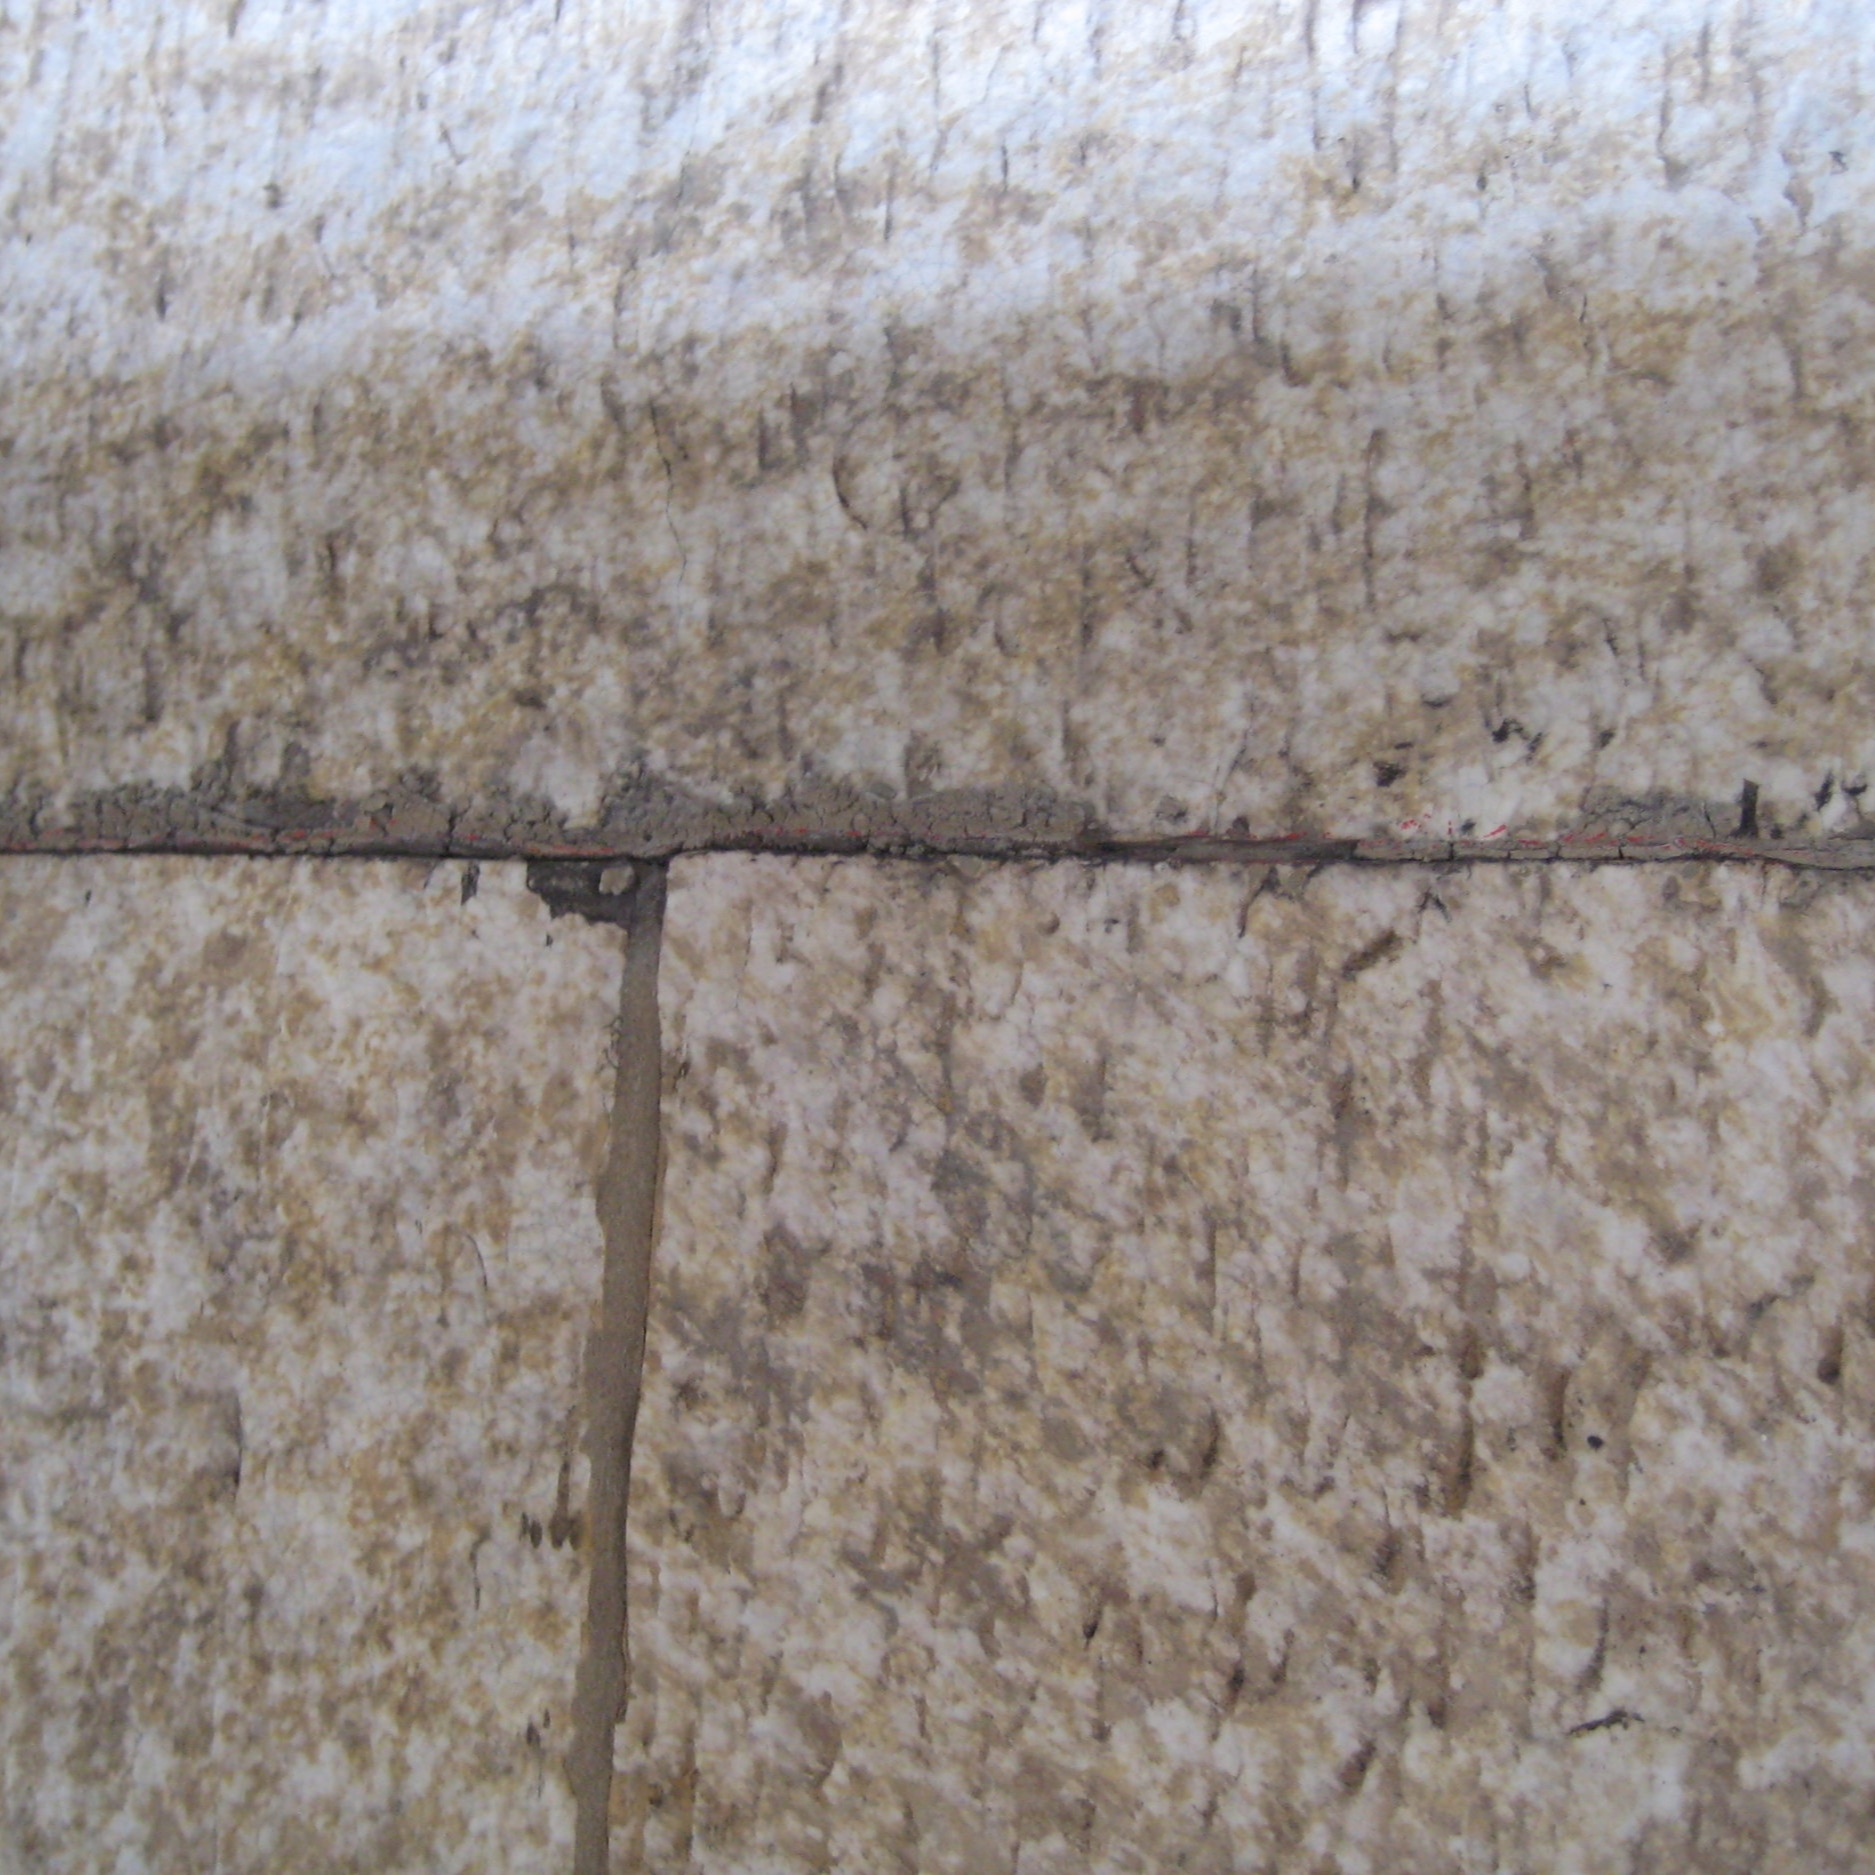 At mortar joints between terra cotta units, either mortar is completely missing or is cracked and is loose within the joint. Or, mortar is attatched to one unit, but the adjacent unit has pulled away from the joint.